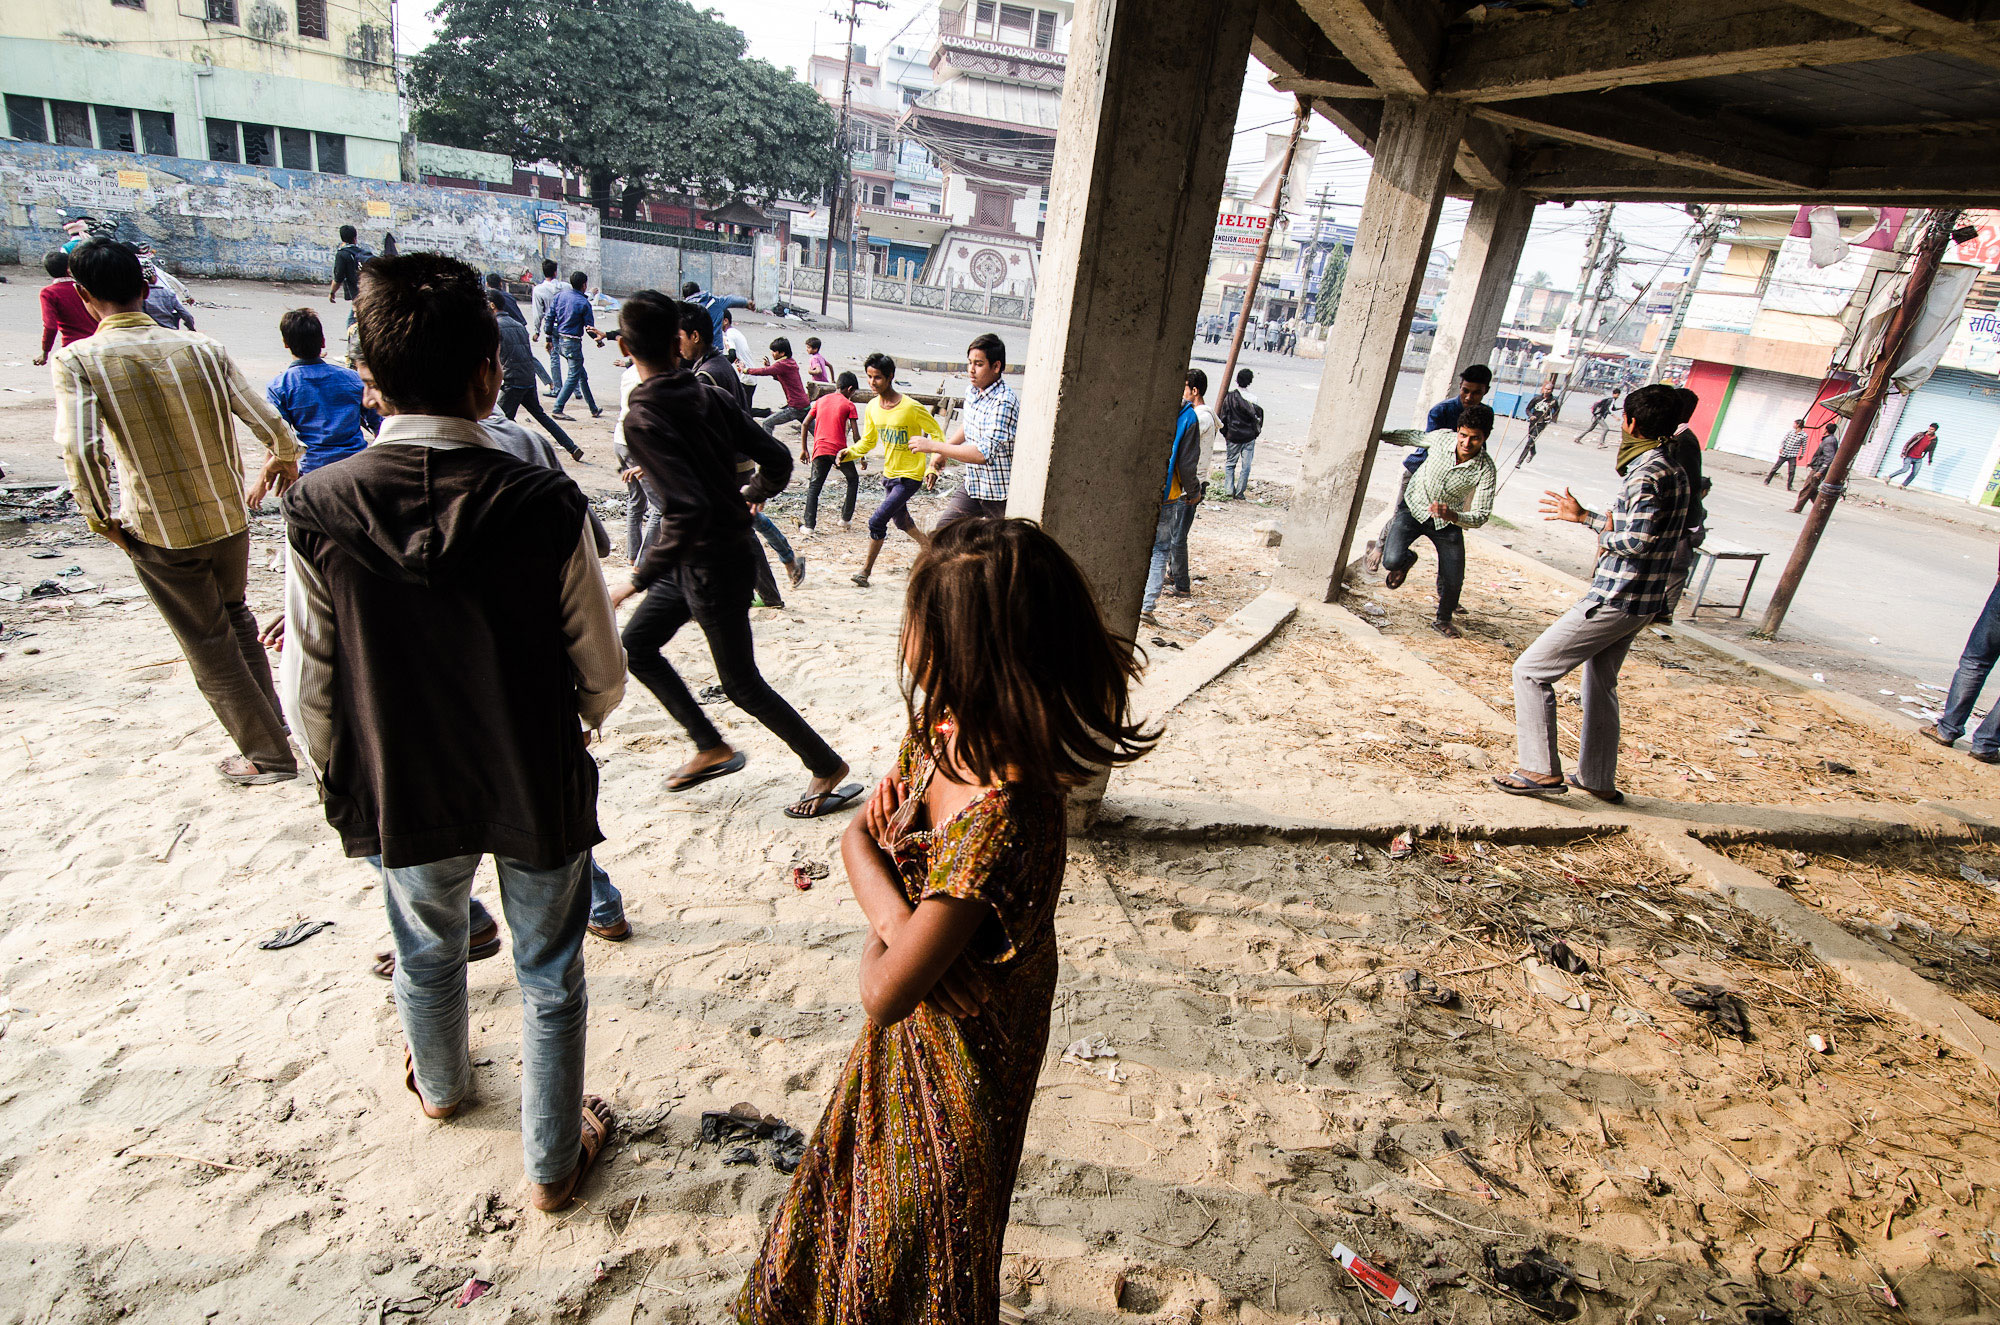 Stone-throwing protesters run away from the Nepali police during clashes in the center of Birgunj.  [Valerie Plesch/ Al Jazeera]